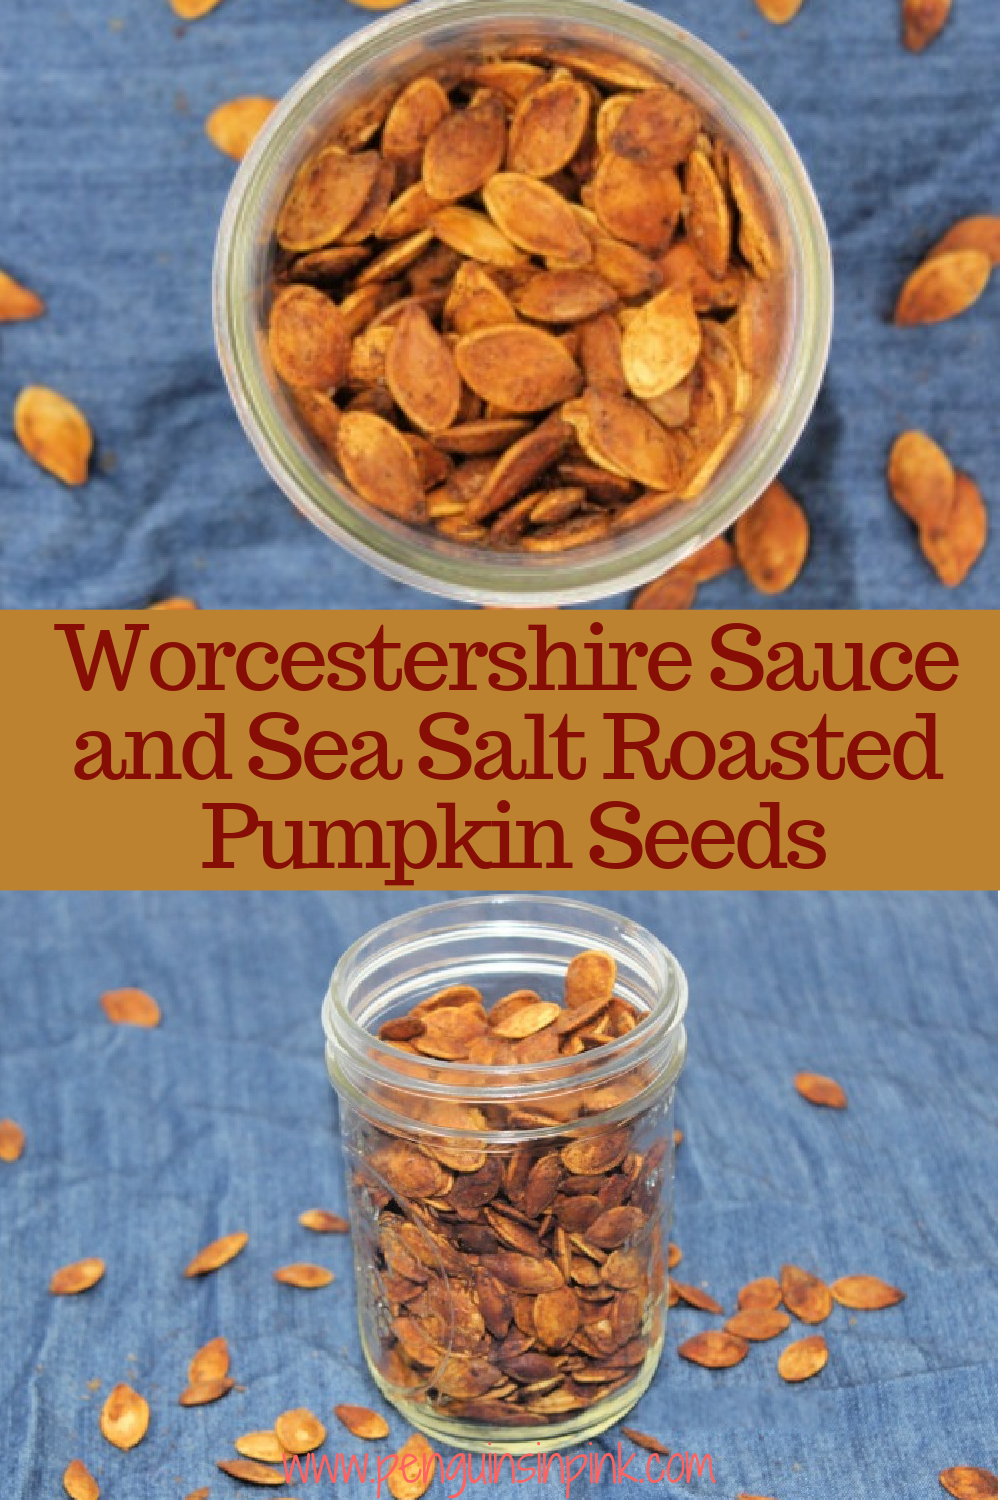 Worcestershire sauce and sea salt combine to make salty, savory, crunchy roasted pumpkin seeds. Worcestershire Sauce and Sea Salt Roasted Pumpkin Seeds are a great snack that travels well making it perfect for car rides, ball games, hiking, or just watching a movie at home.